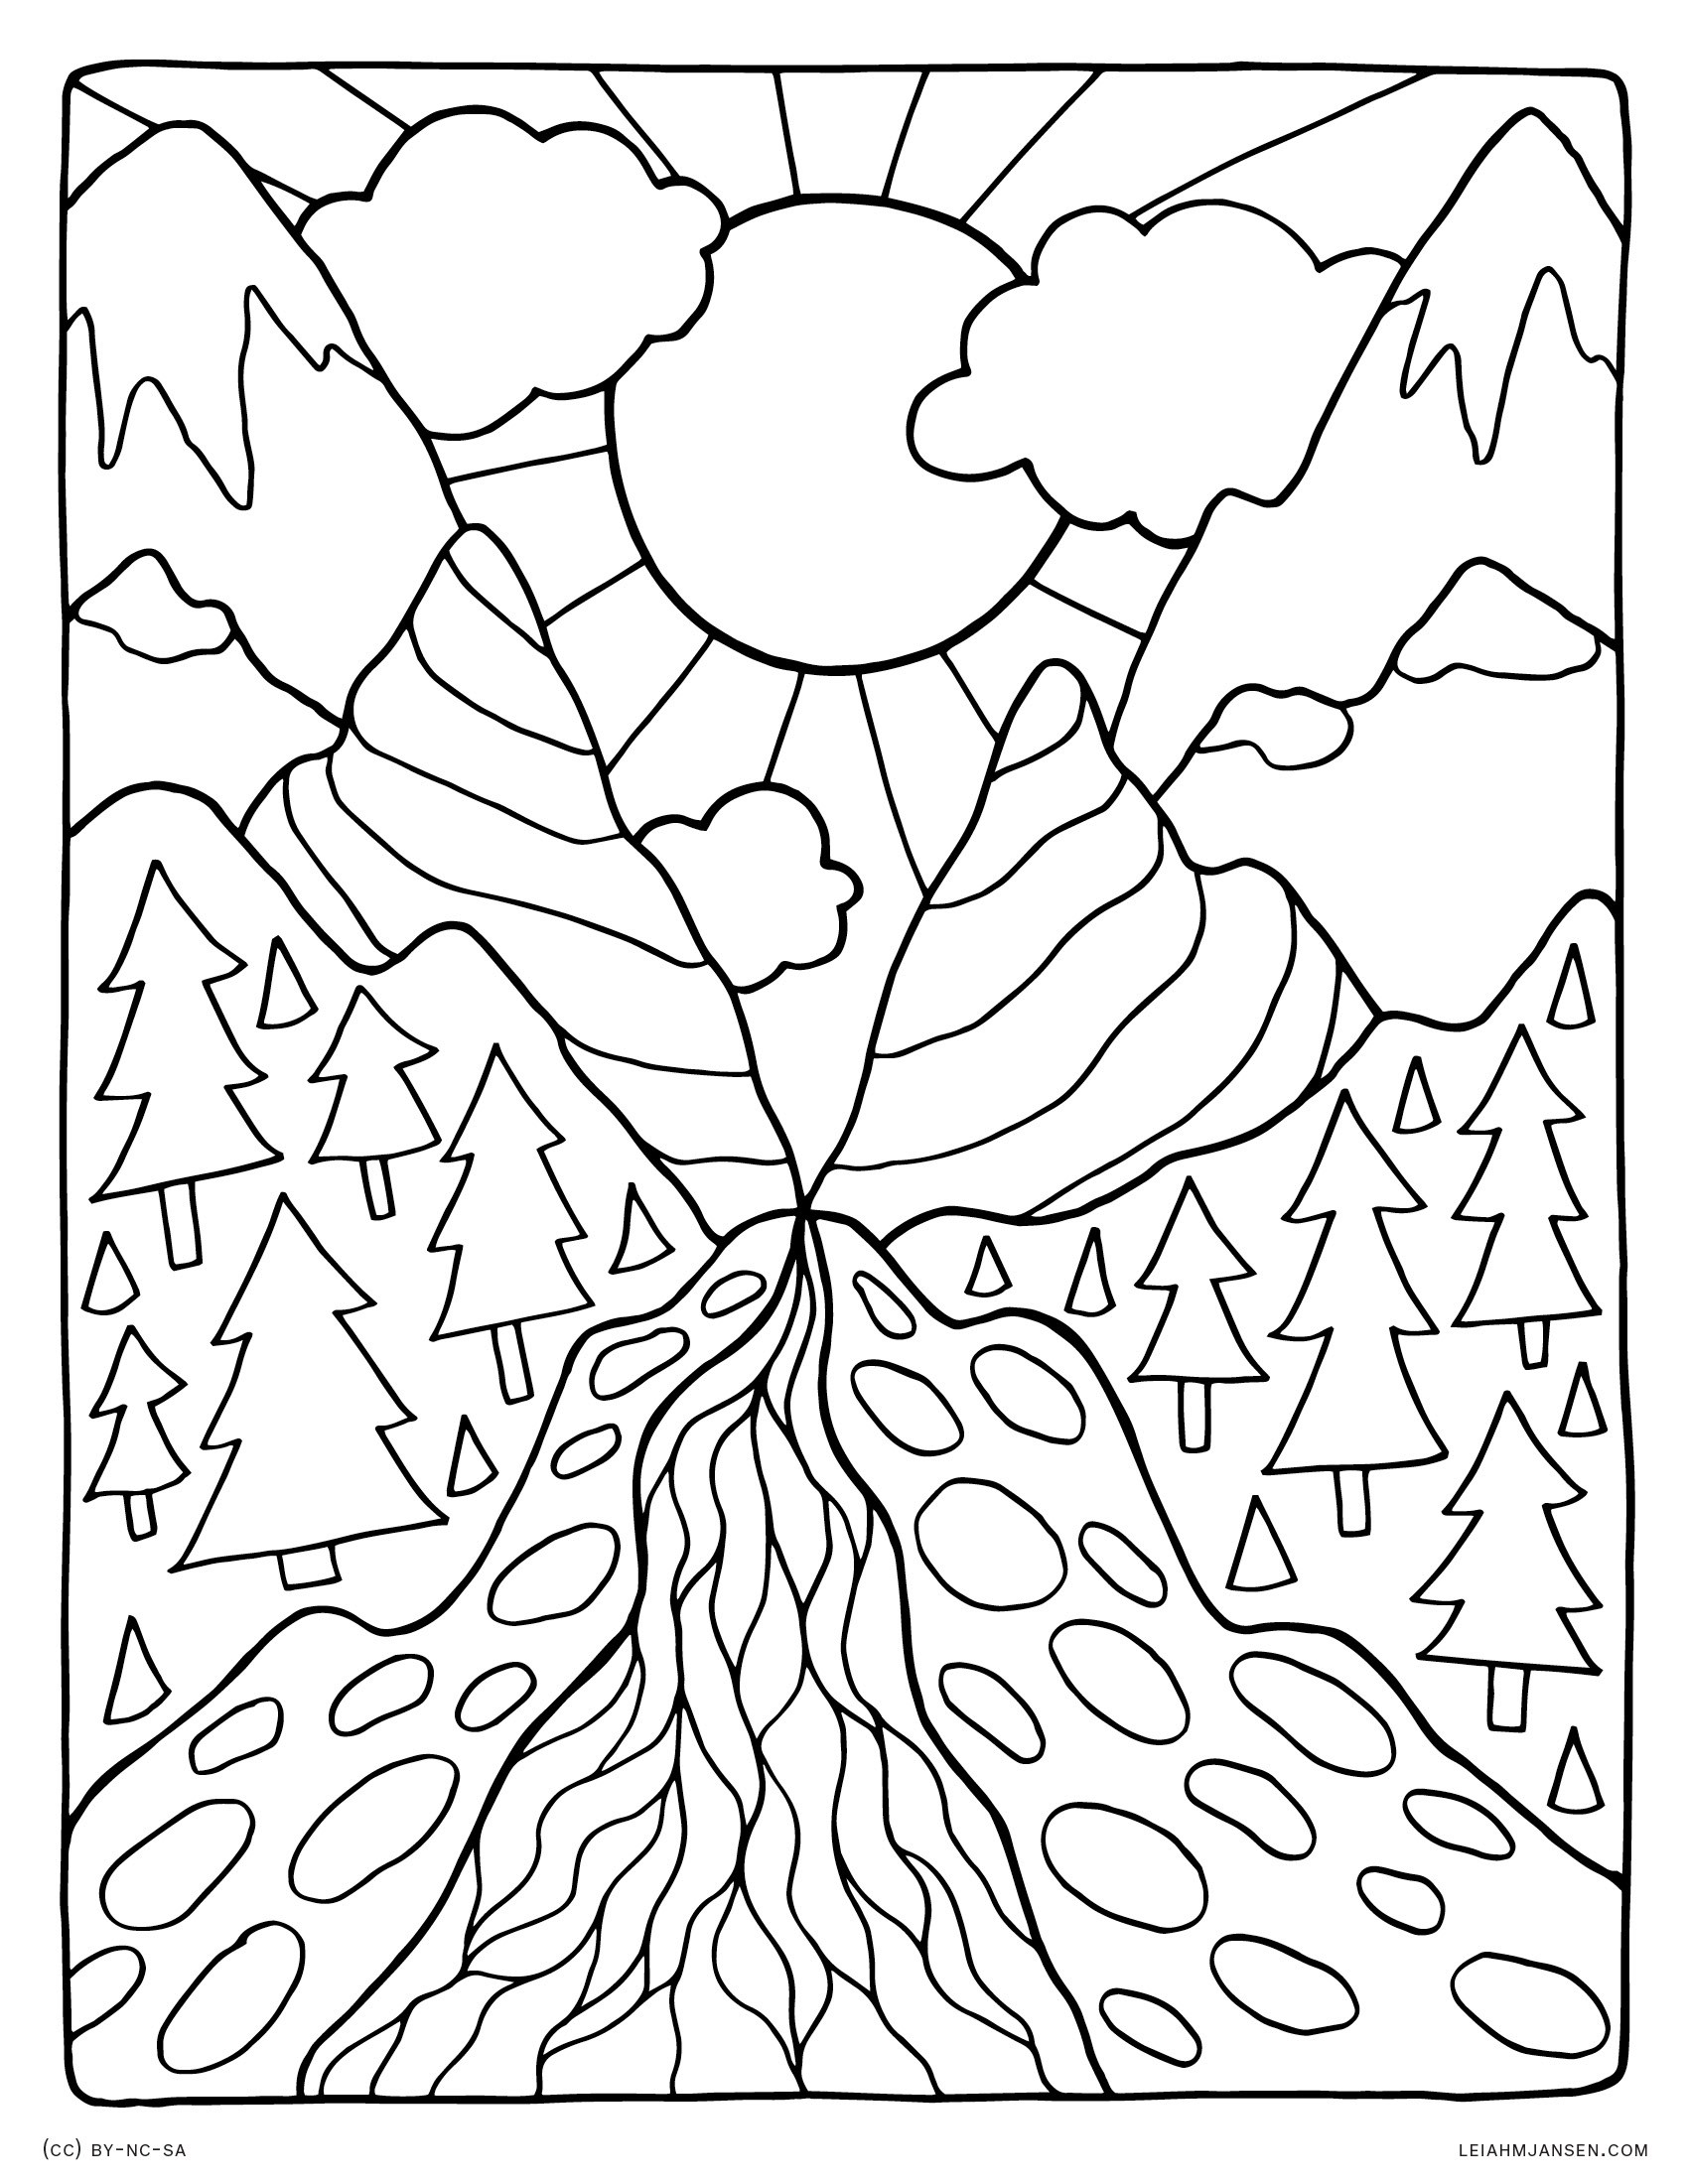 Nature Scene Drawing at GetDrawings.com | Free for personal use ...